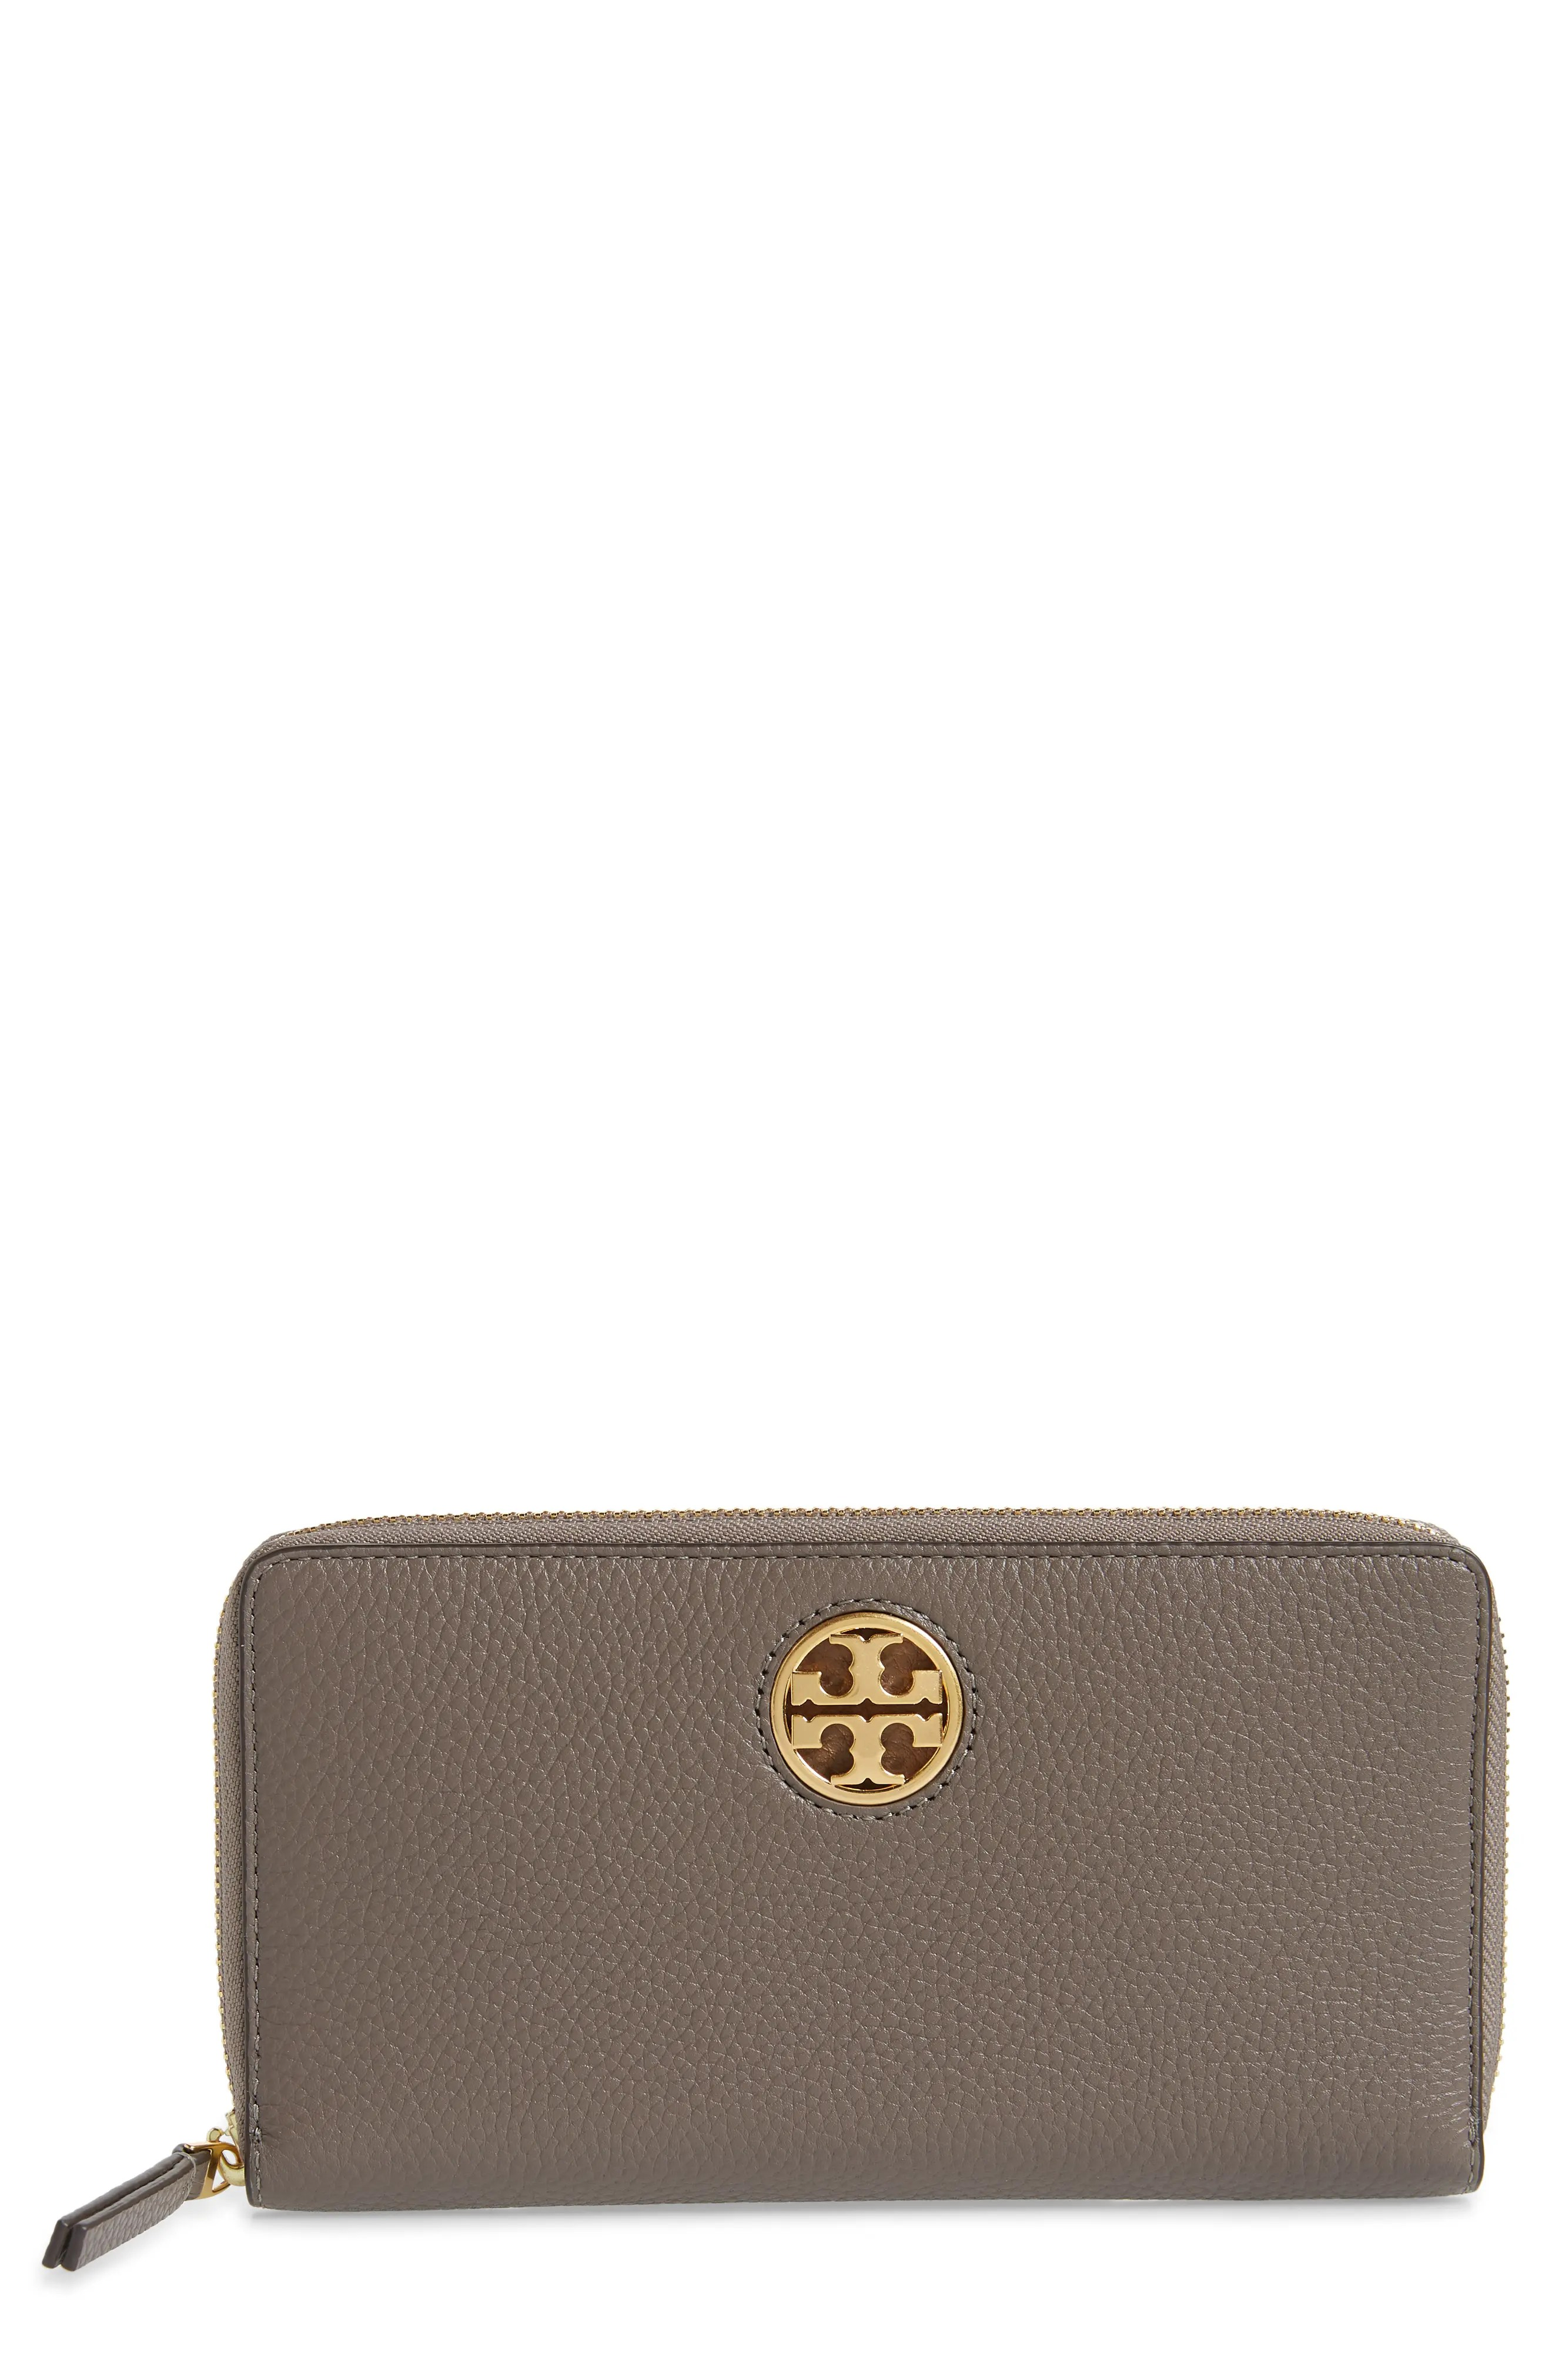 tory burch tory carson zip leather continental wallet nordstrom rack